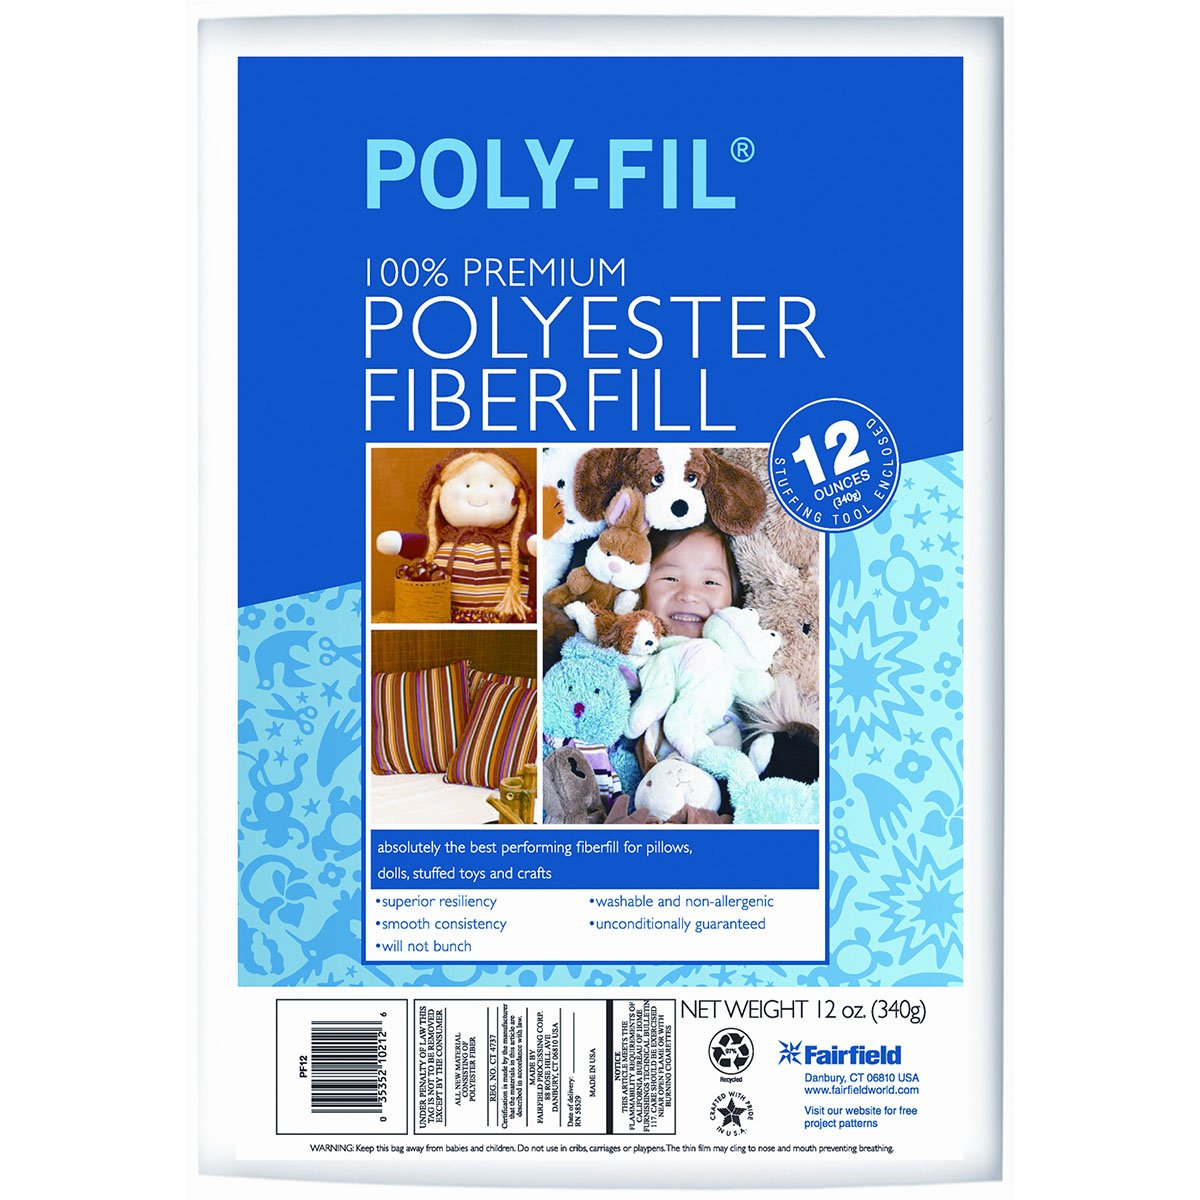 Poly-Fil Premium Fiber Fill For Pillow stuffing, Dolls, Stuffed Toys and Plush Plushie Crafts